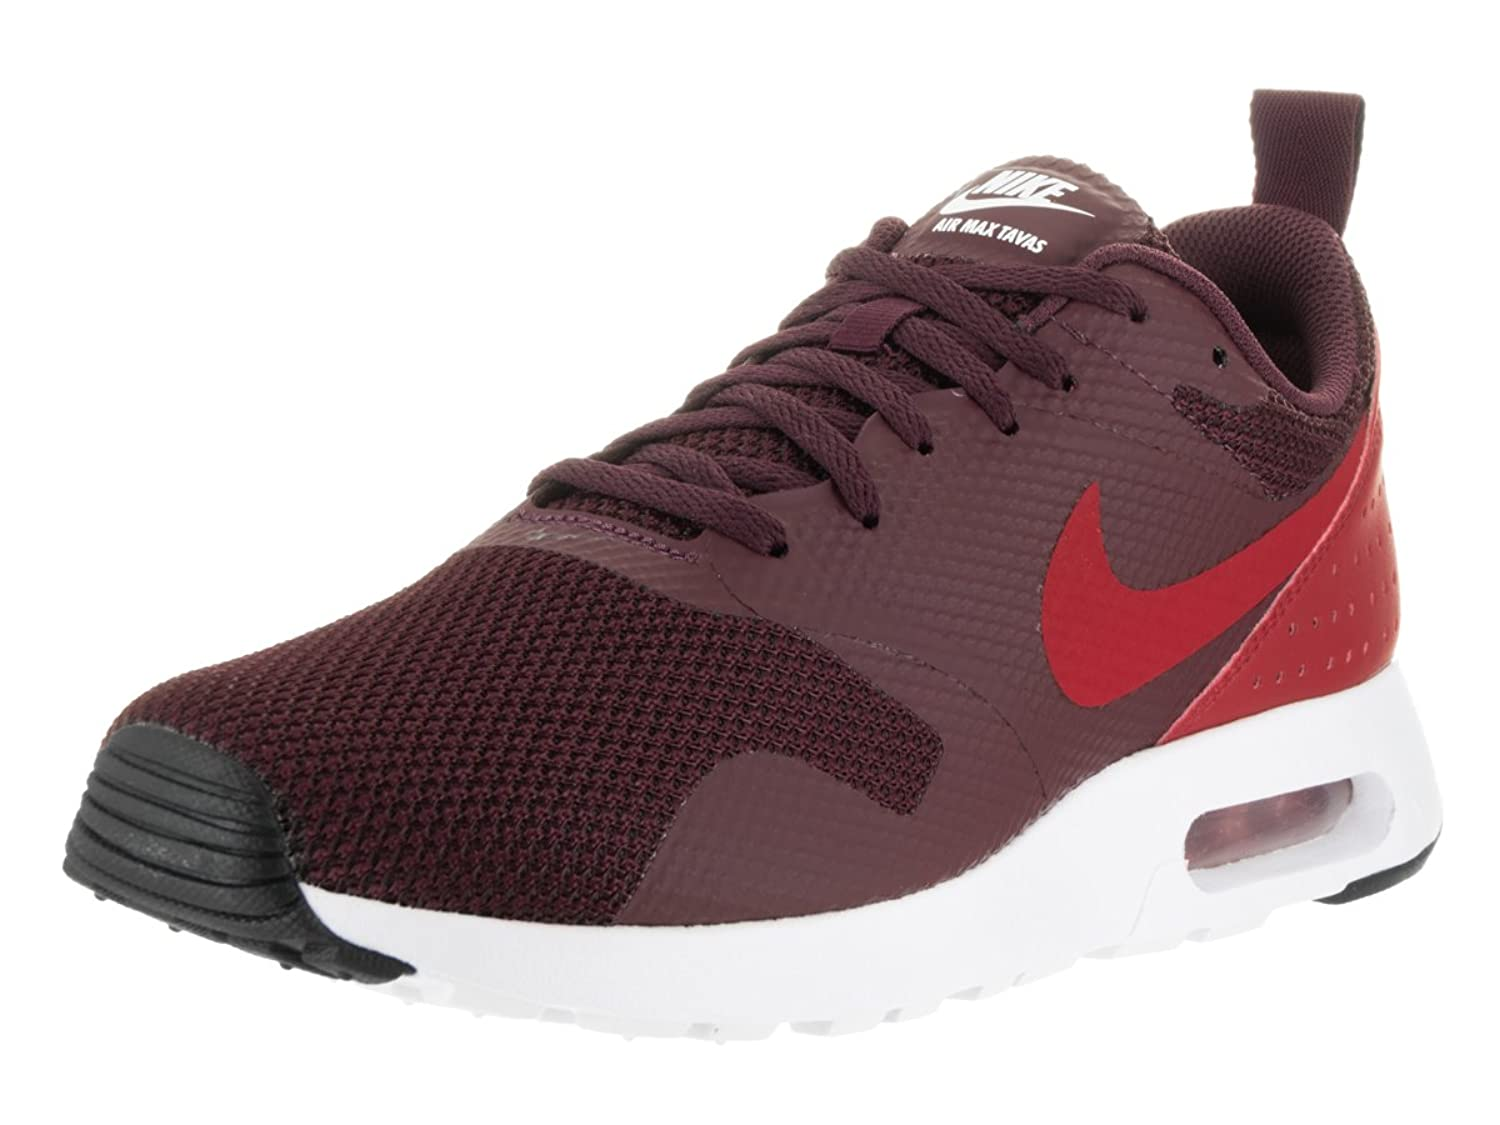 Nike Herren Men's Nike Air Max Tavas Shoe Turnschuhe